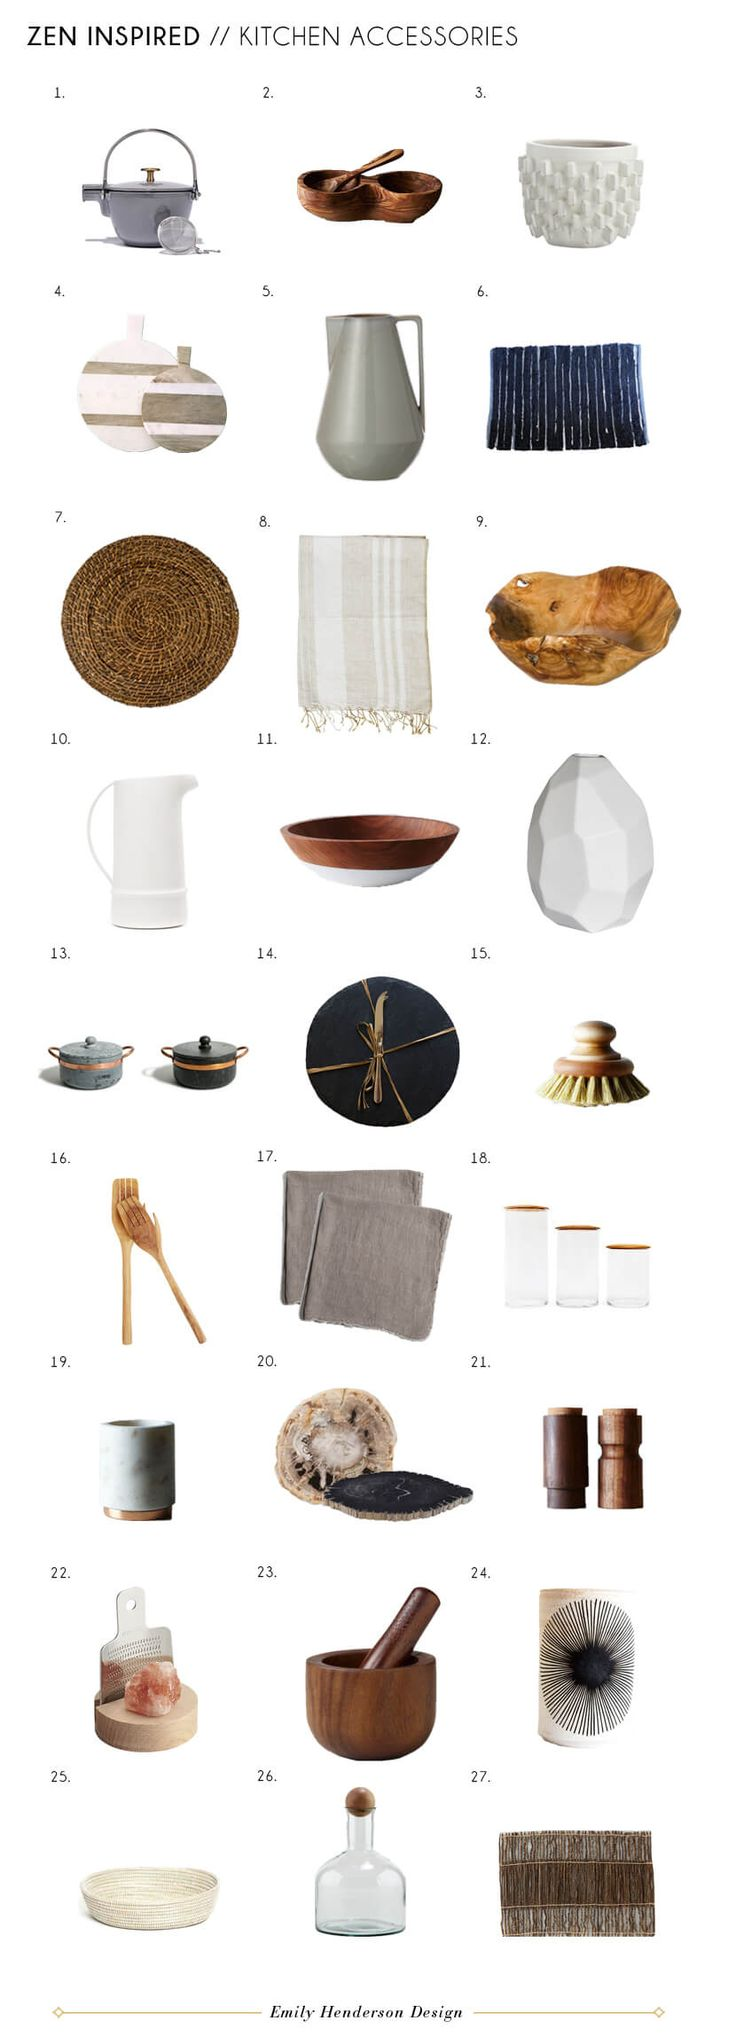 Kitchen Accessories: Zen